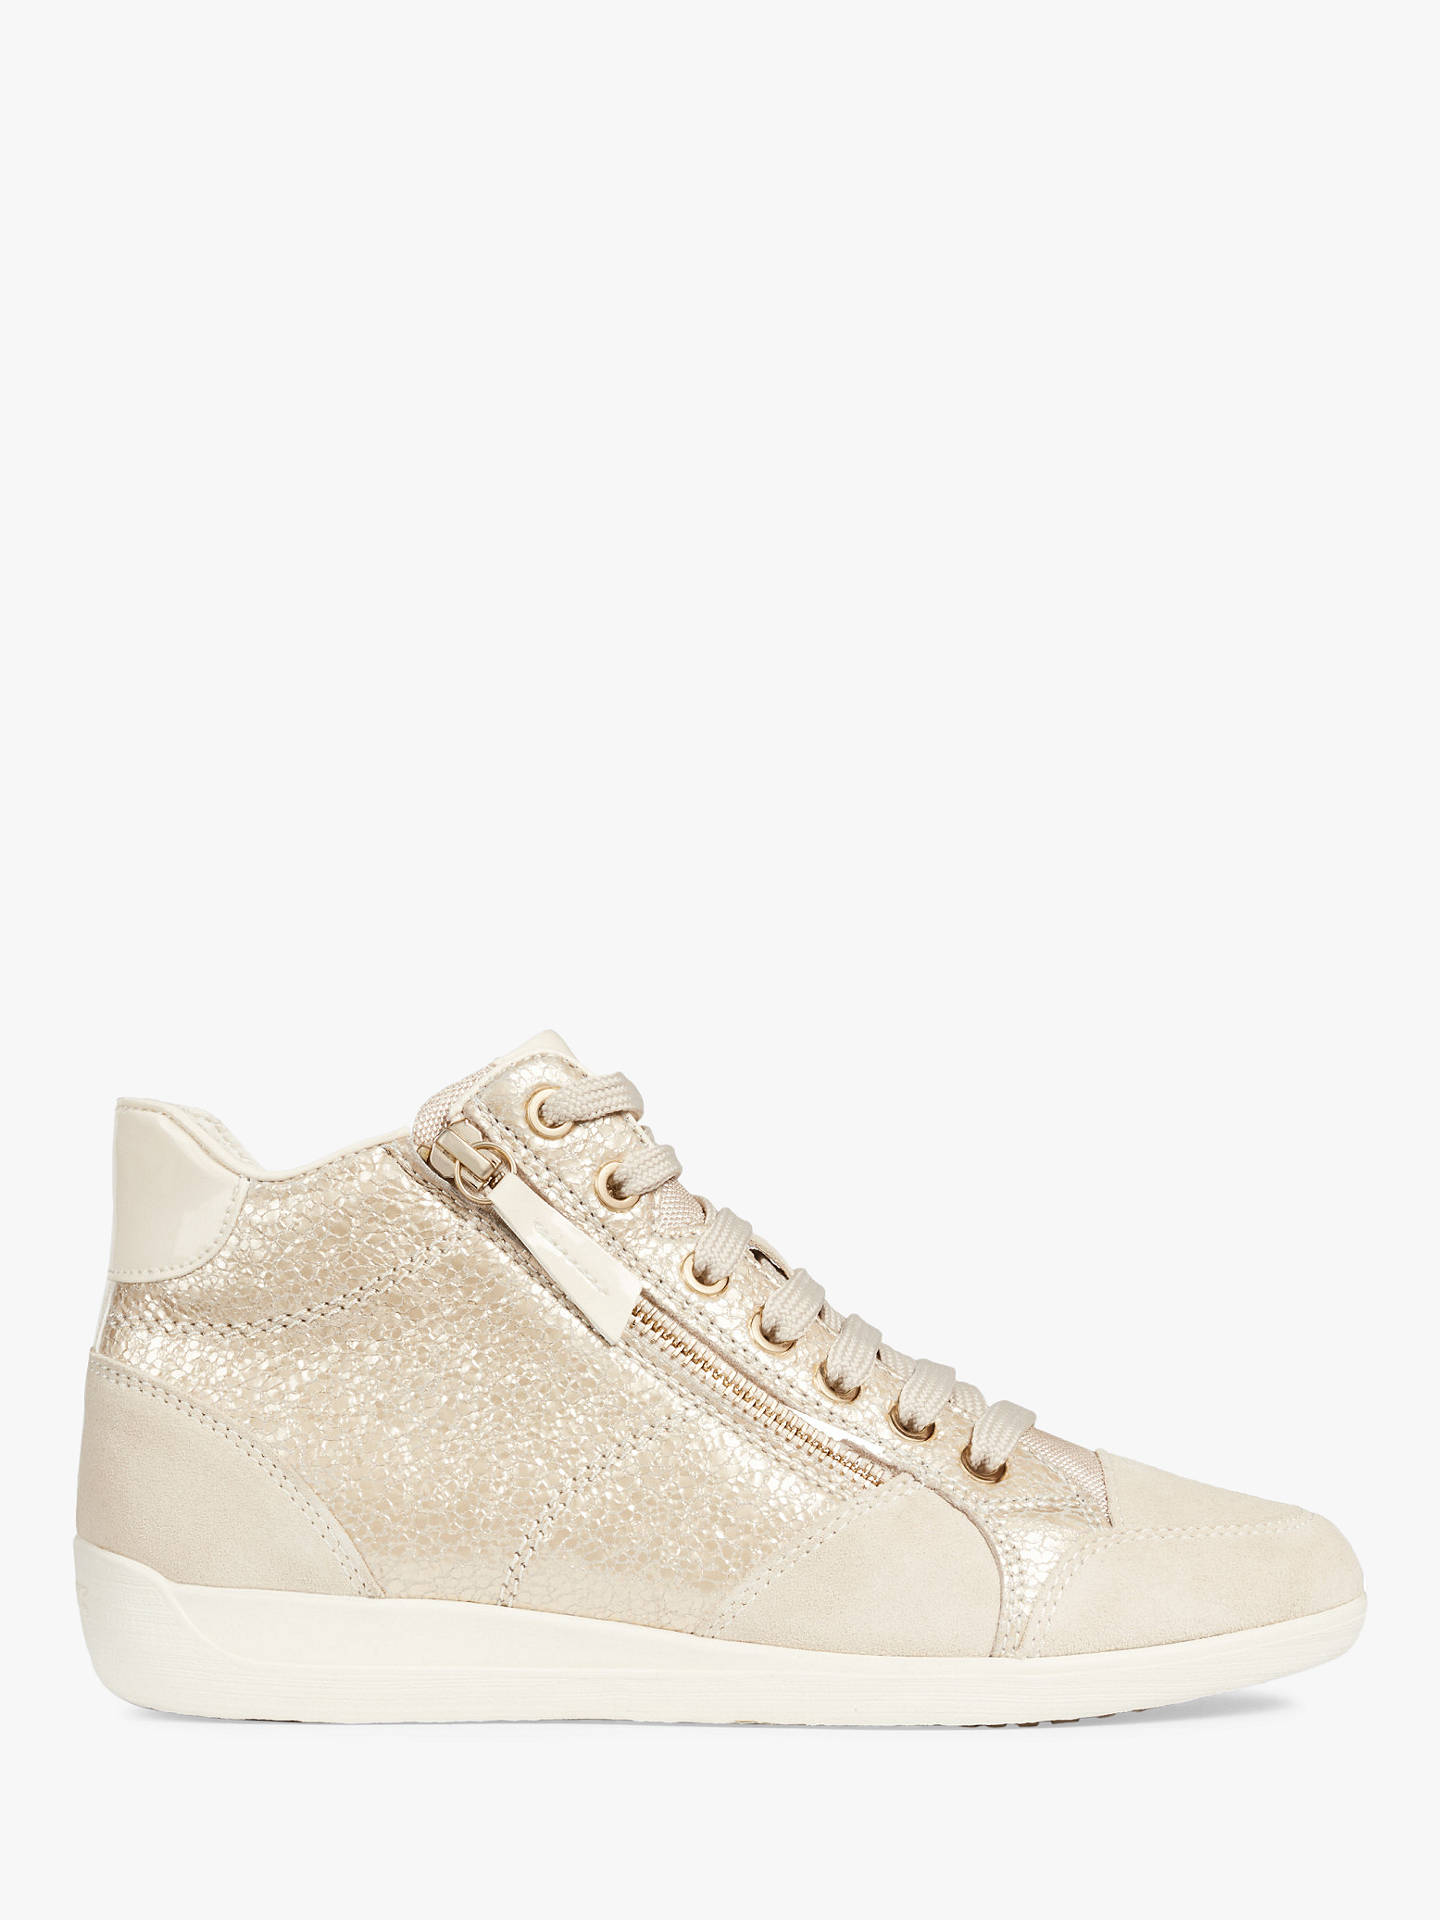 Geox Women's Myria High Top Lace Up Trainers, GoldCream